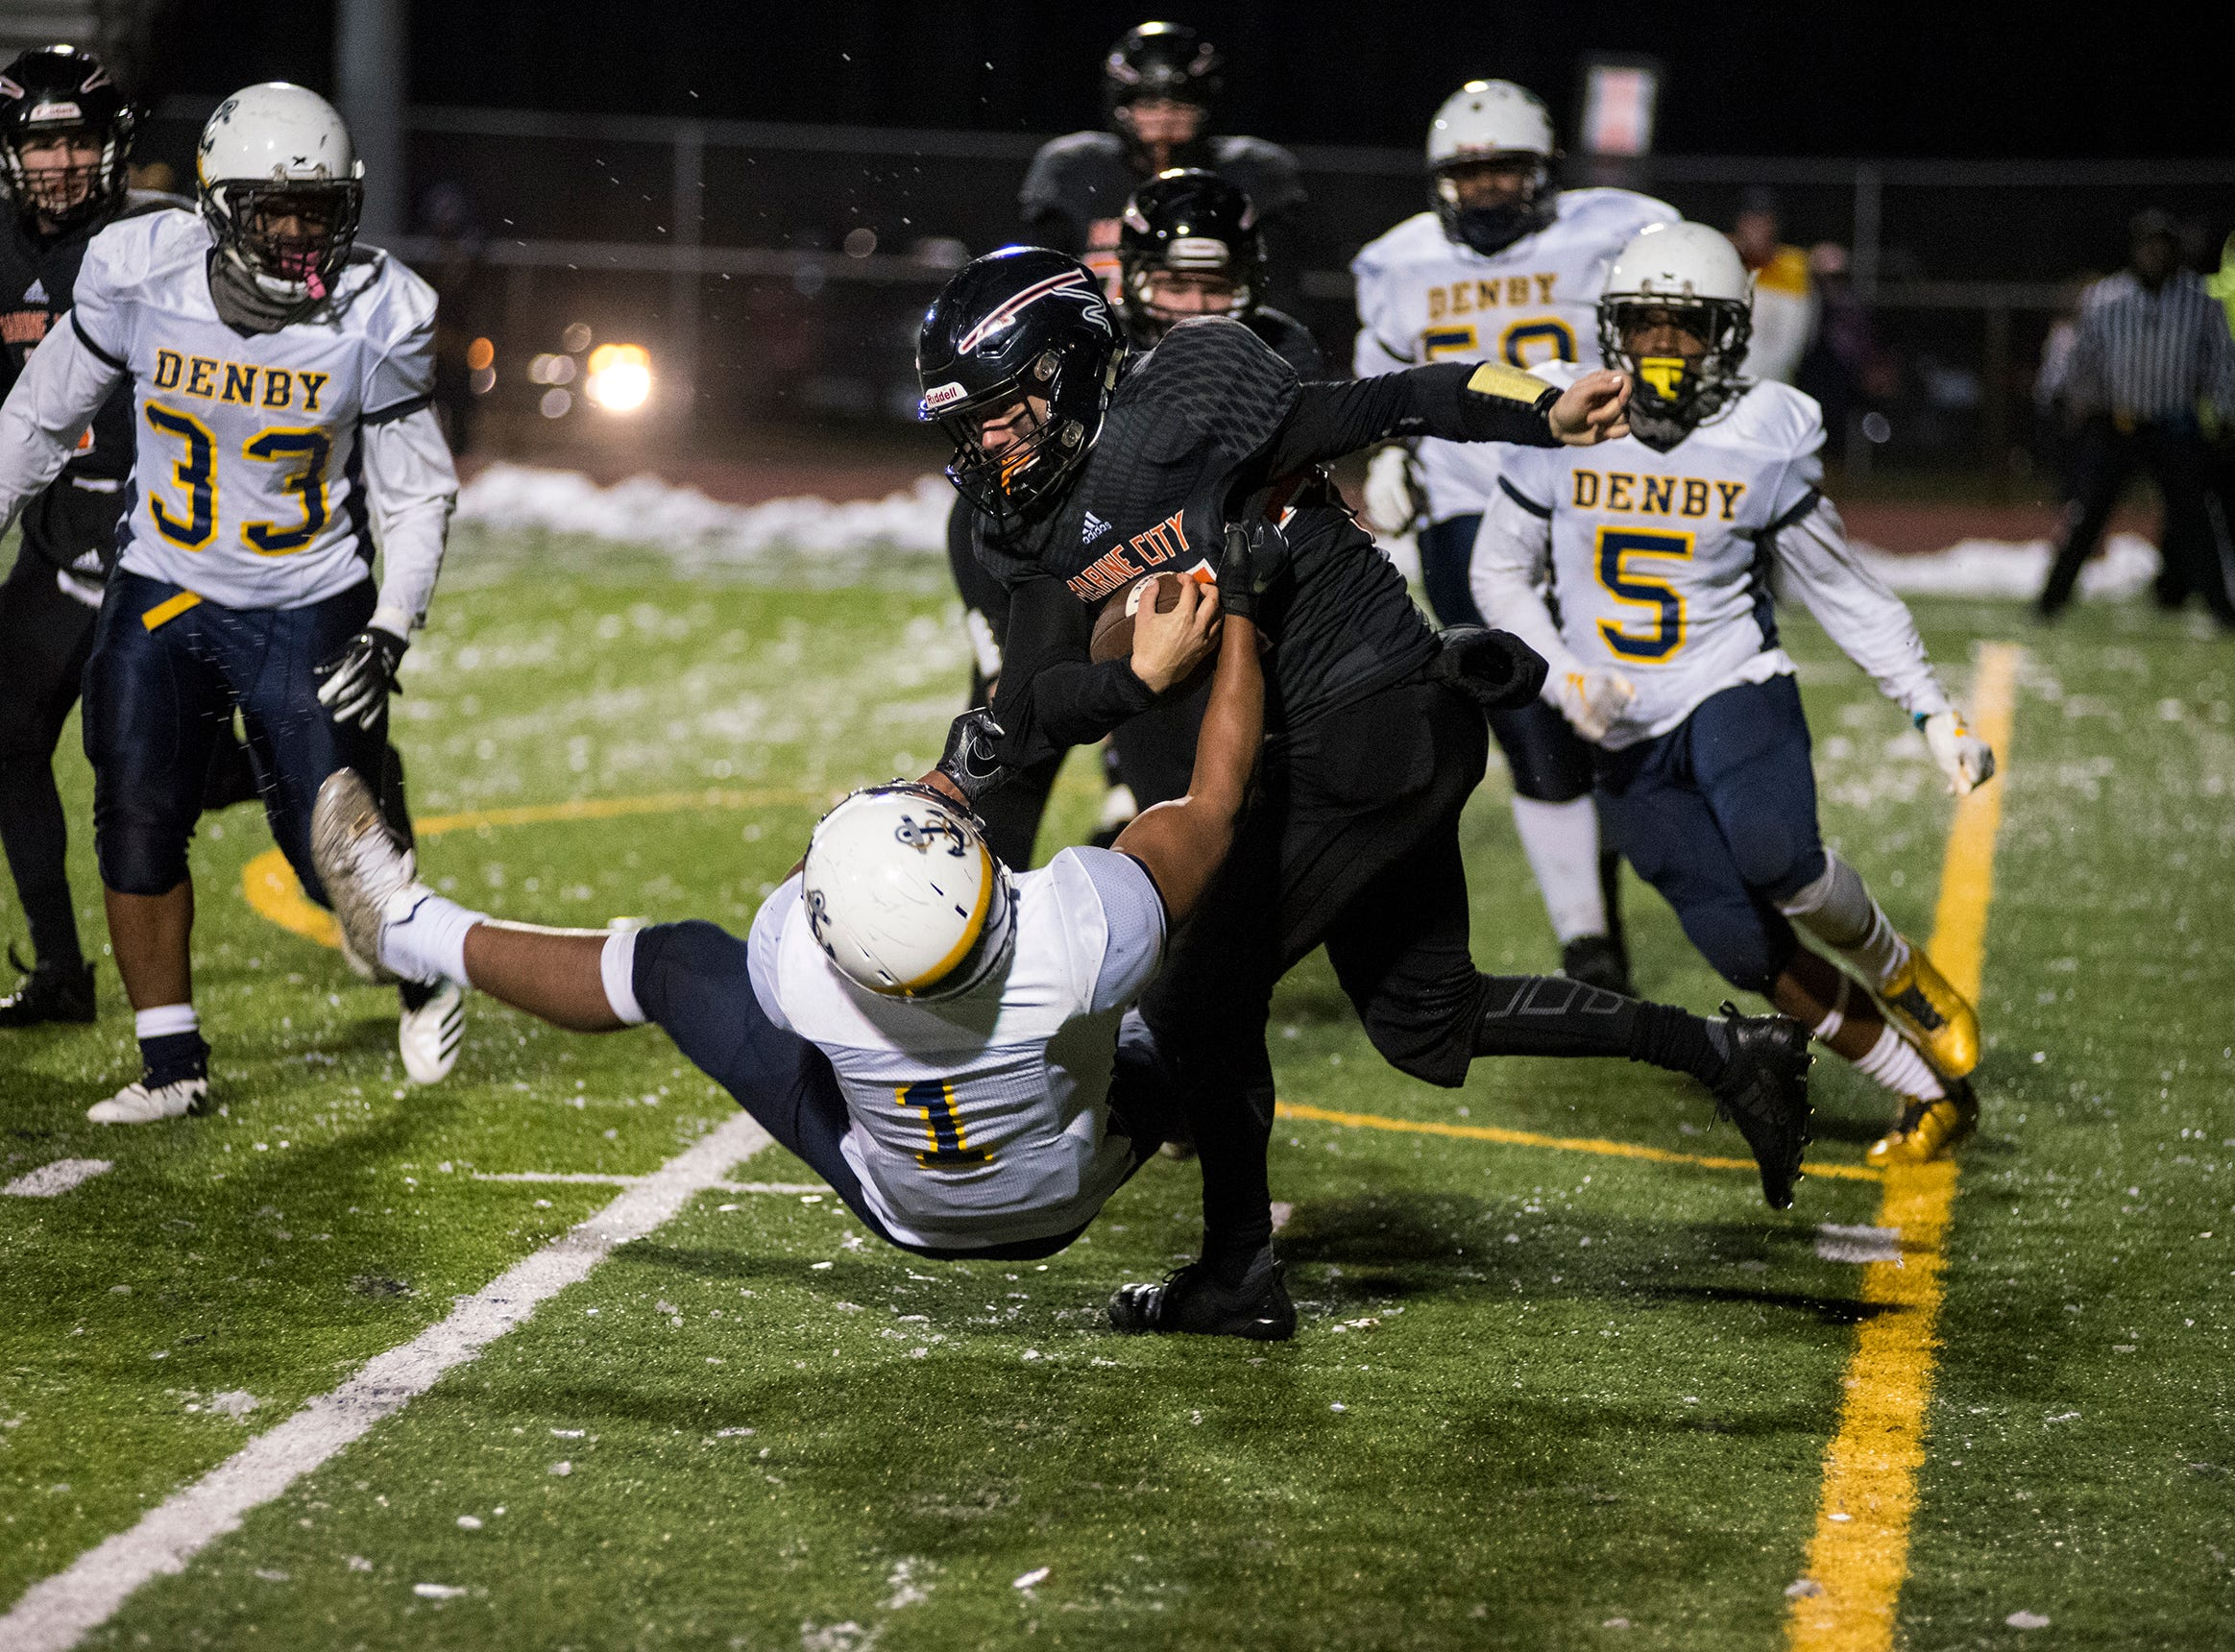 Detroit Denby Tech's Jamari Griffin (1) tackles Marine City High School's Aren Sopfe during the MHSAA Division 5 regional championship game Friday, Nov. 9, 2018 at East China Stadium.